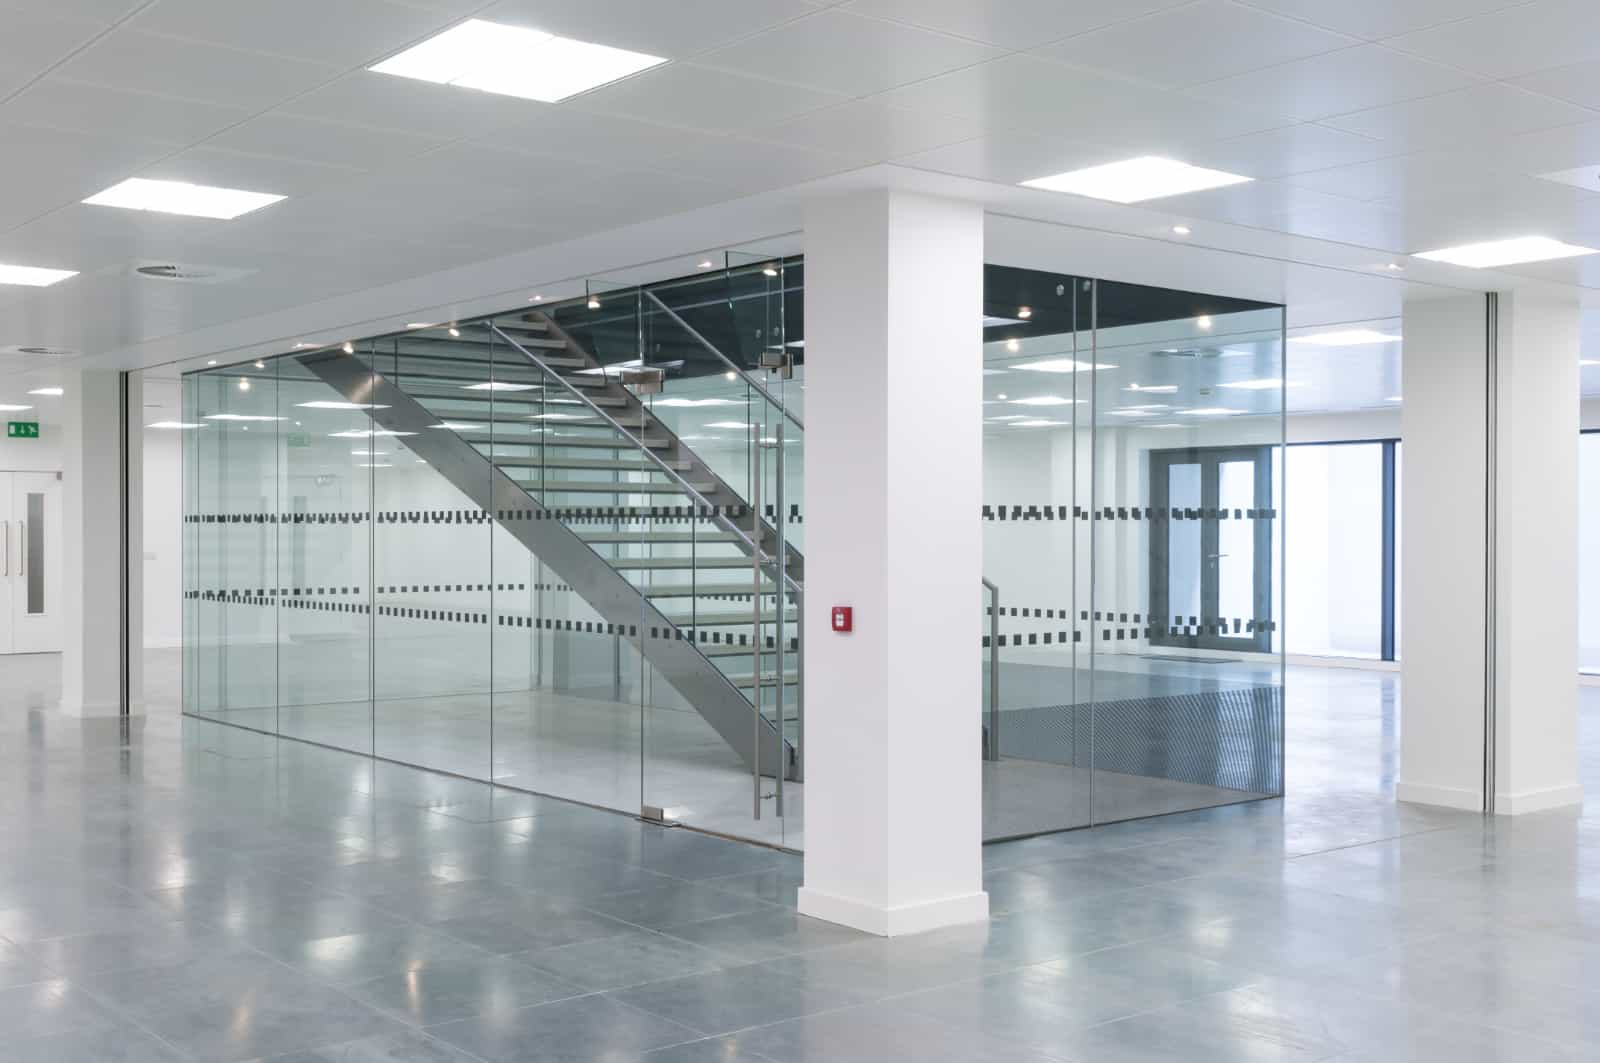 commercial property day porter janitorial services